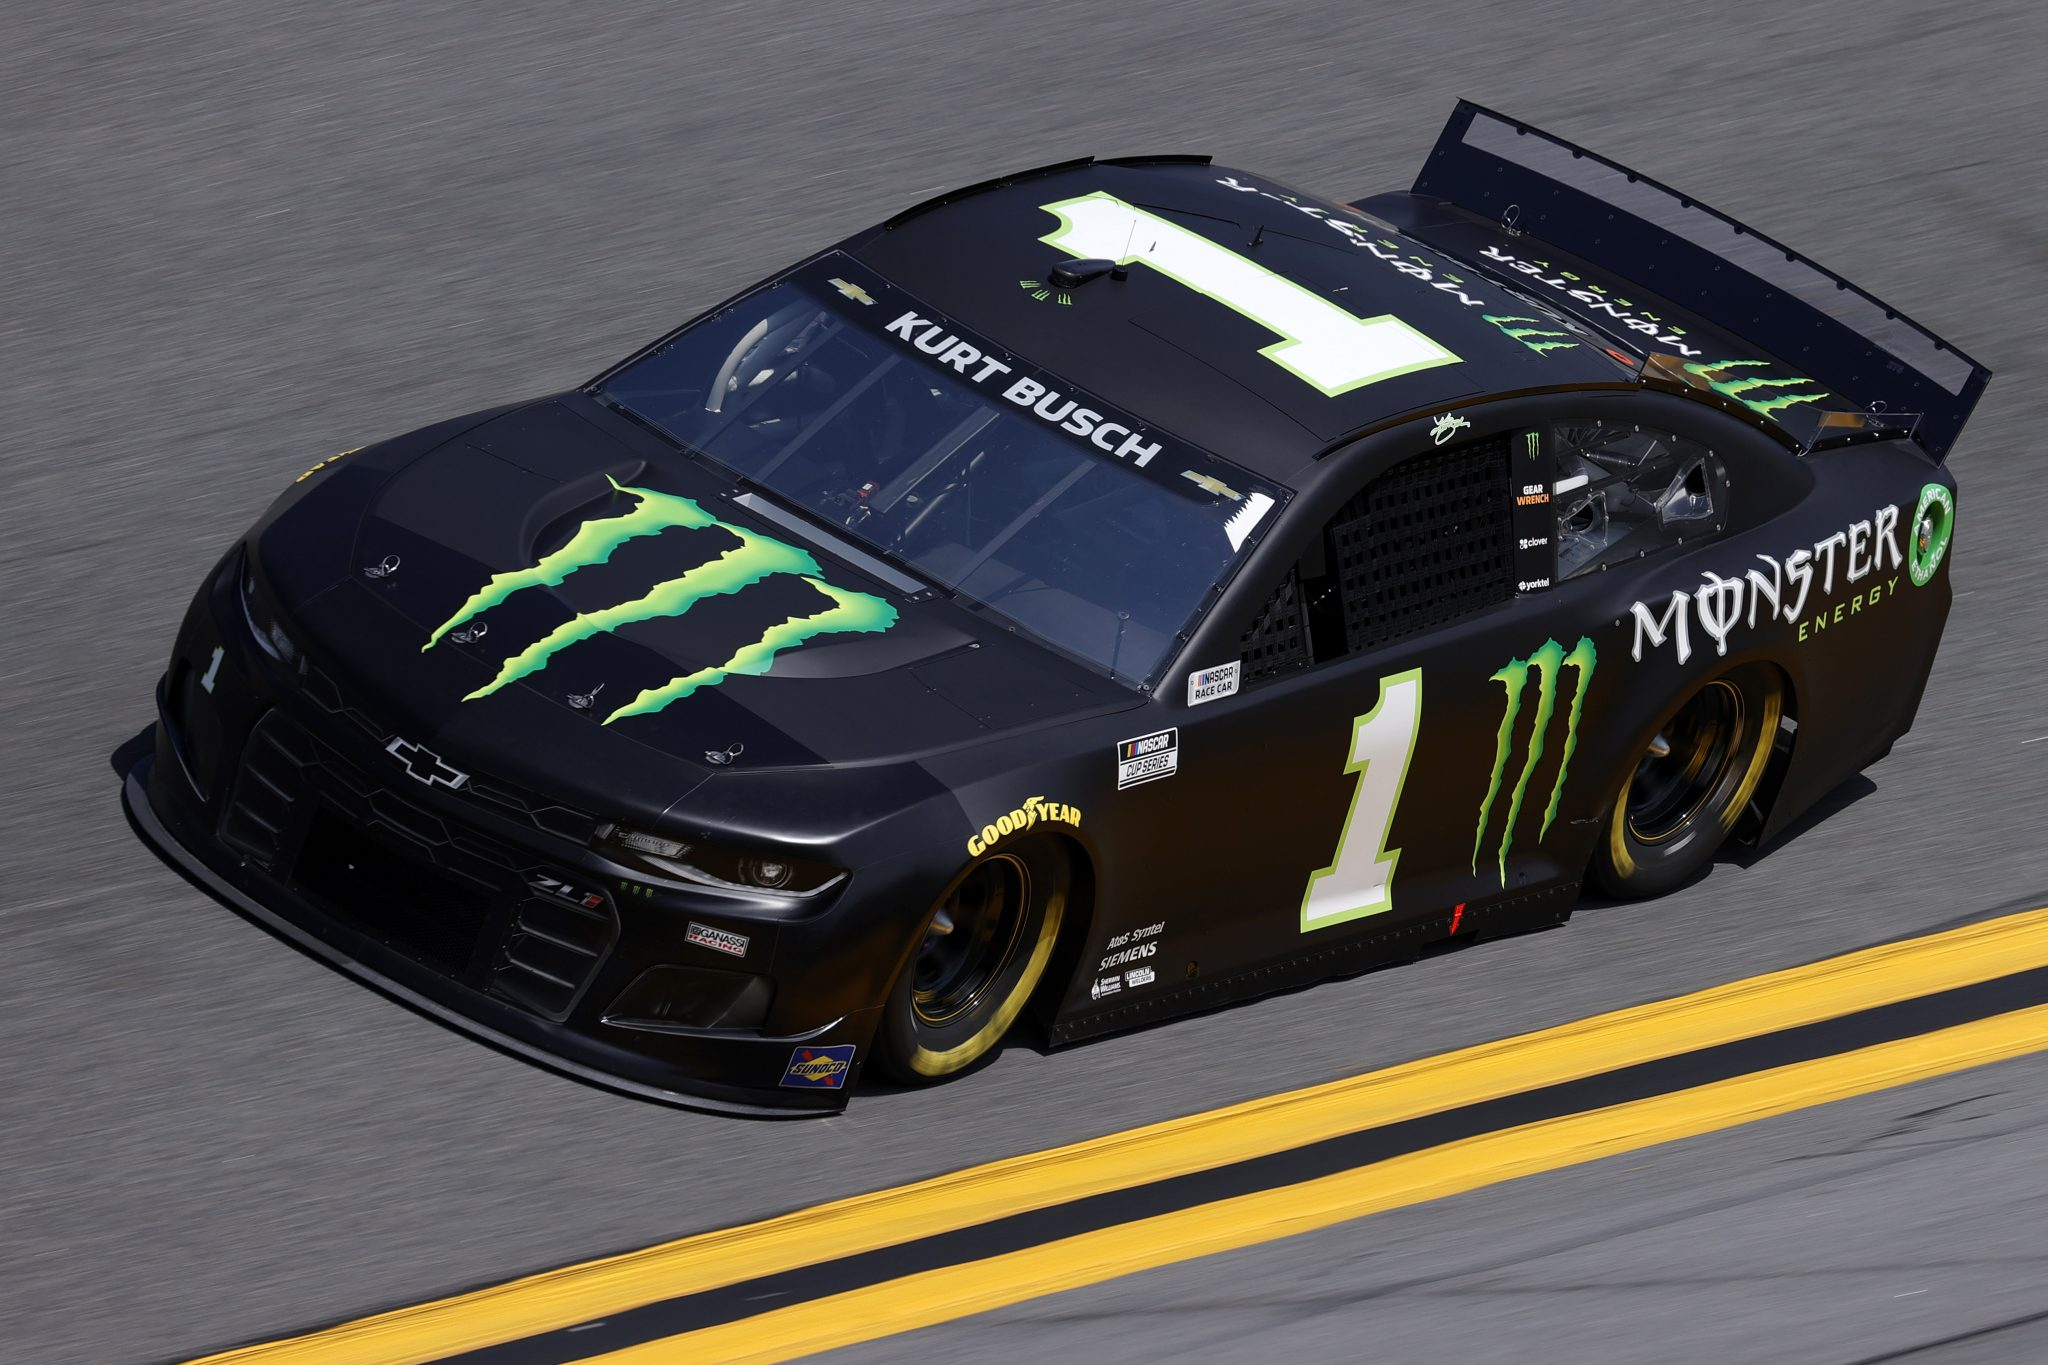 DAYTONA BEACH, FLORIDA - FEBRUARY 10: Kurt Busch, driver of the #1 Monster Energy Chevrolet, drives during practice for the NASCAR Cup Series 63rd Annual Daytona 500 at Daytona International Speedway on February 10, 2021 in Daytona Beach, Florida. (Photo by Jared C. Tilton/Getty Images) | Getty Images